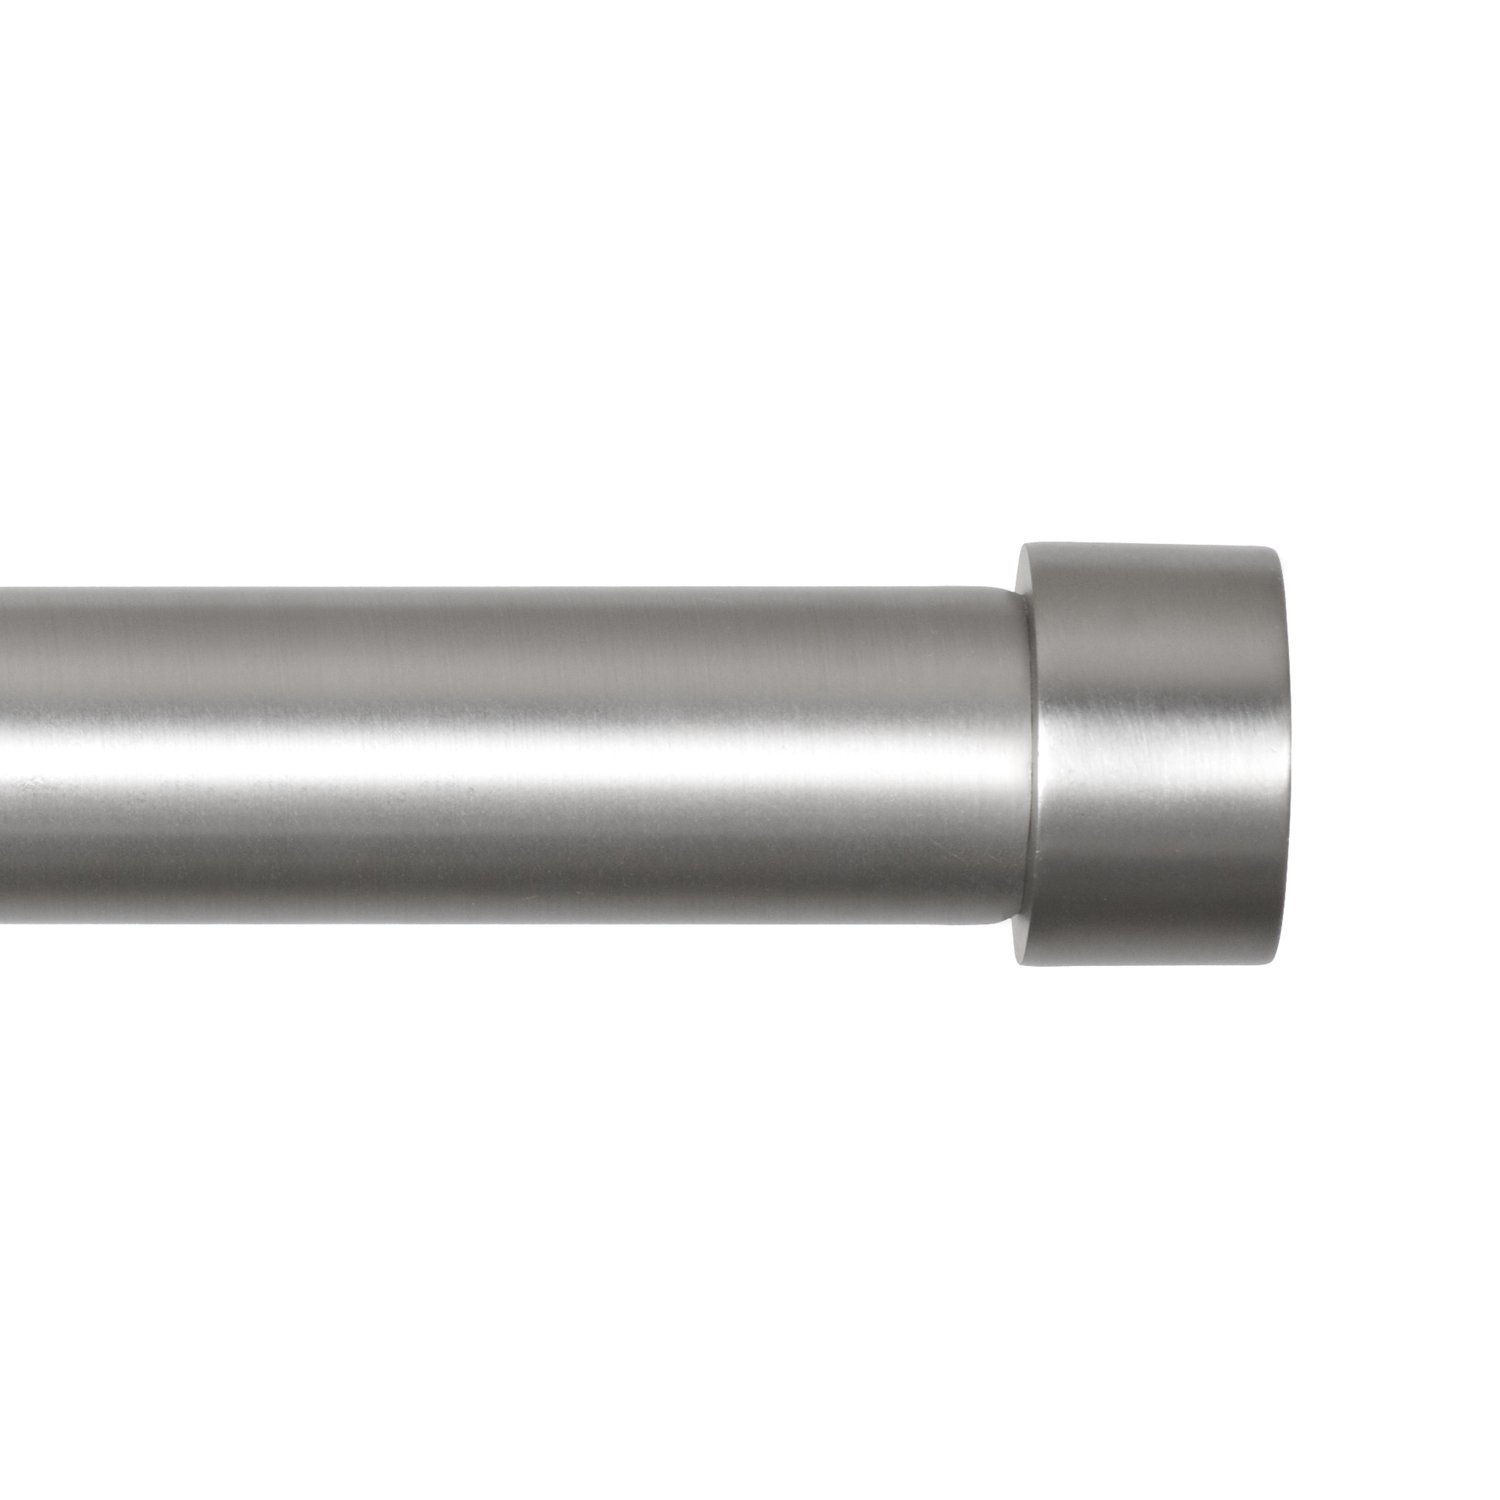 Umbra Cappa Brushed Nickel Curtain Rod Modern Extra Long Extends From 72 To 144 Inches And Includes Matching Finials Brackets Hardware 125